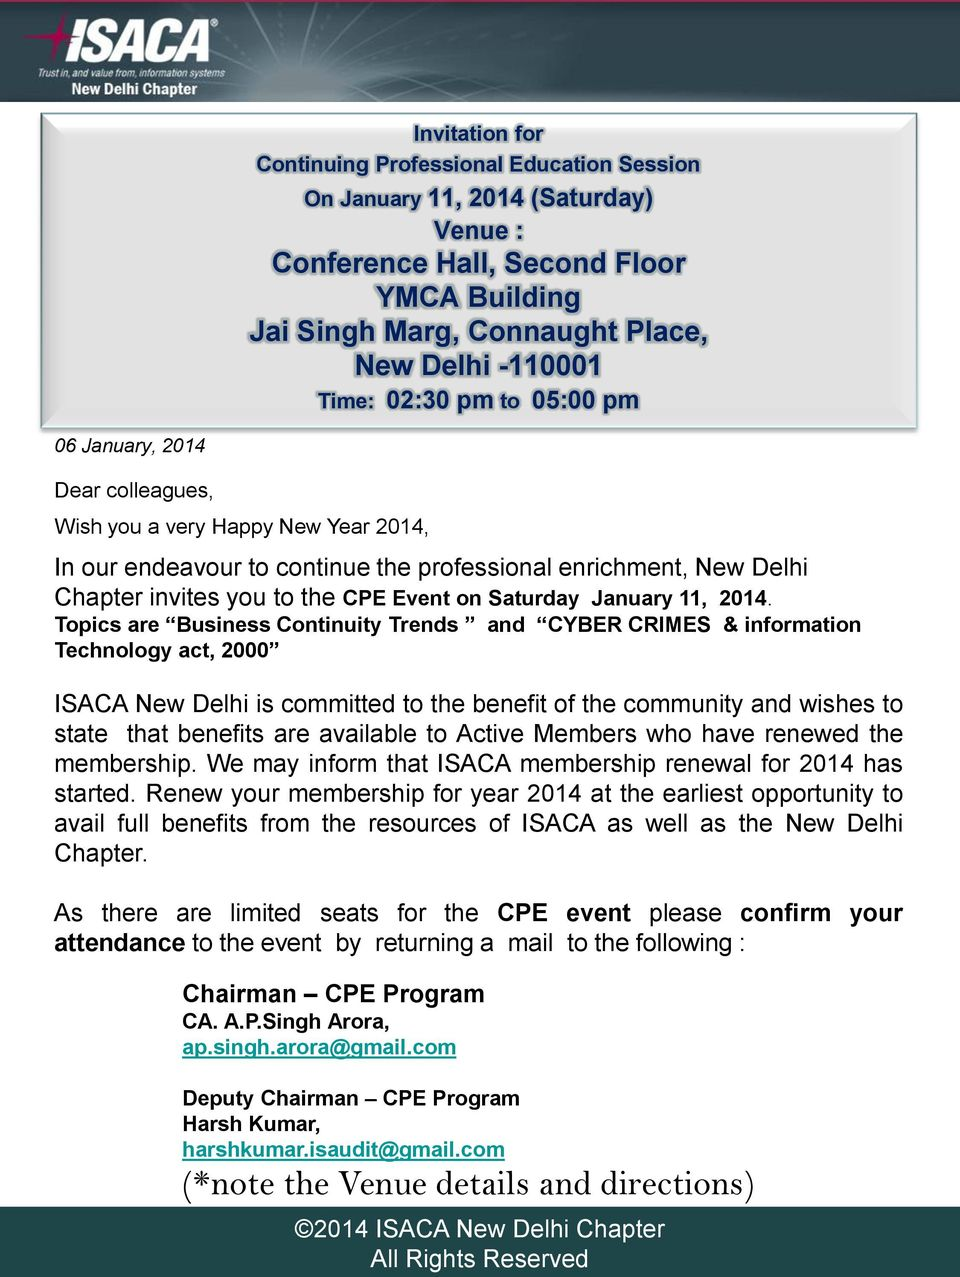 Singh Arora Program Chair 06 January, 2014 Dear colleagues, Wish you a very Happy New Year 2014, In our endeavour to continue the professional enrichment, New Delhi Chapter invites you to the CPE